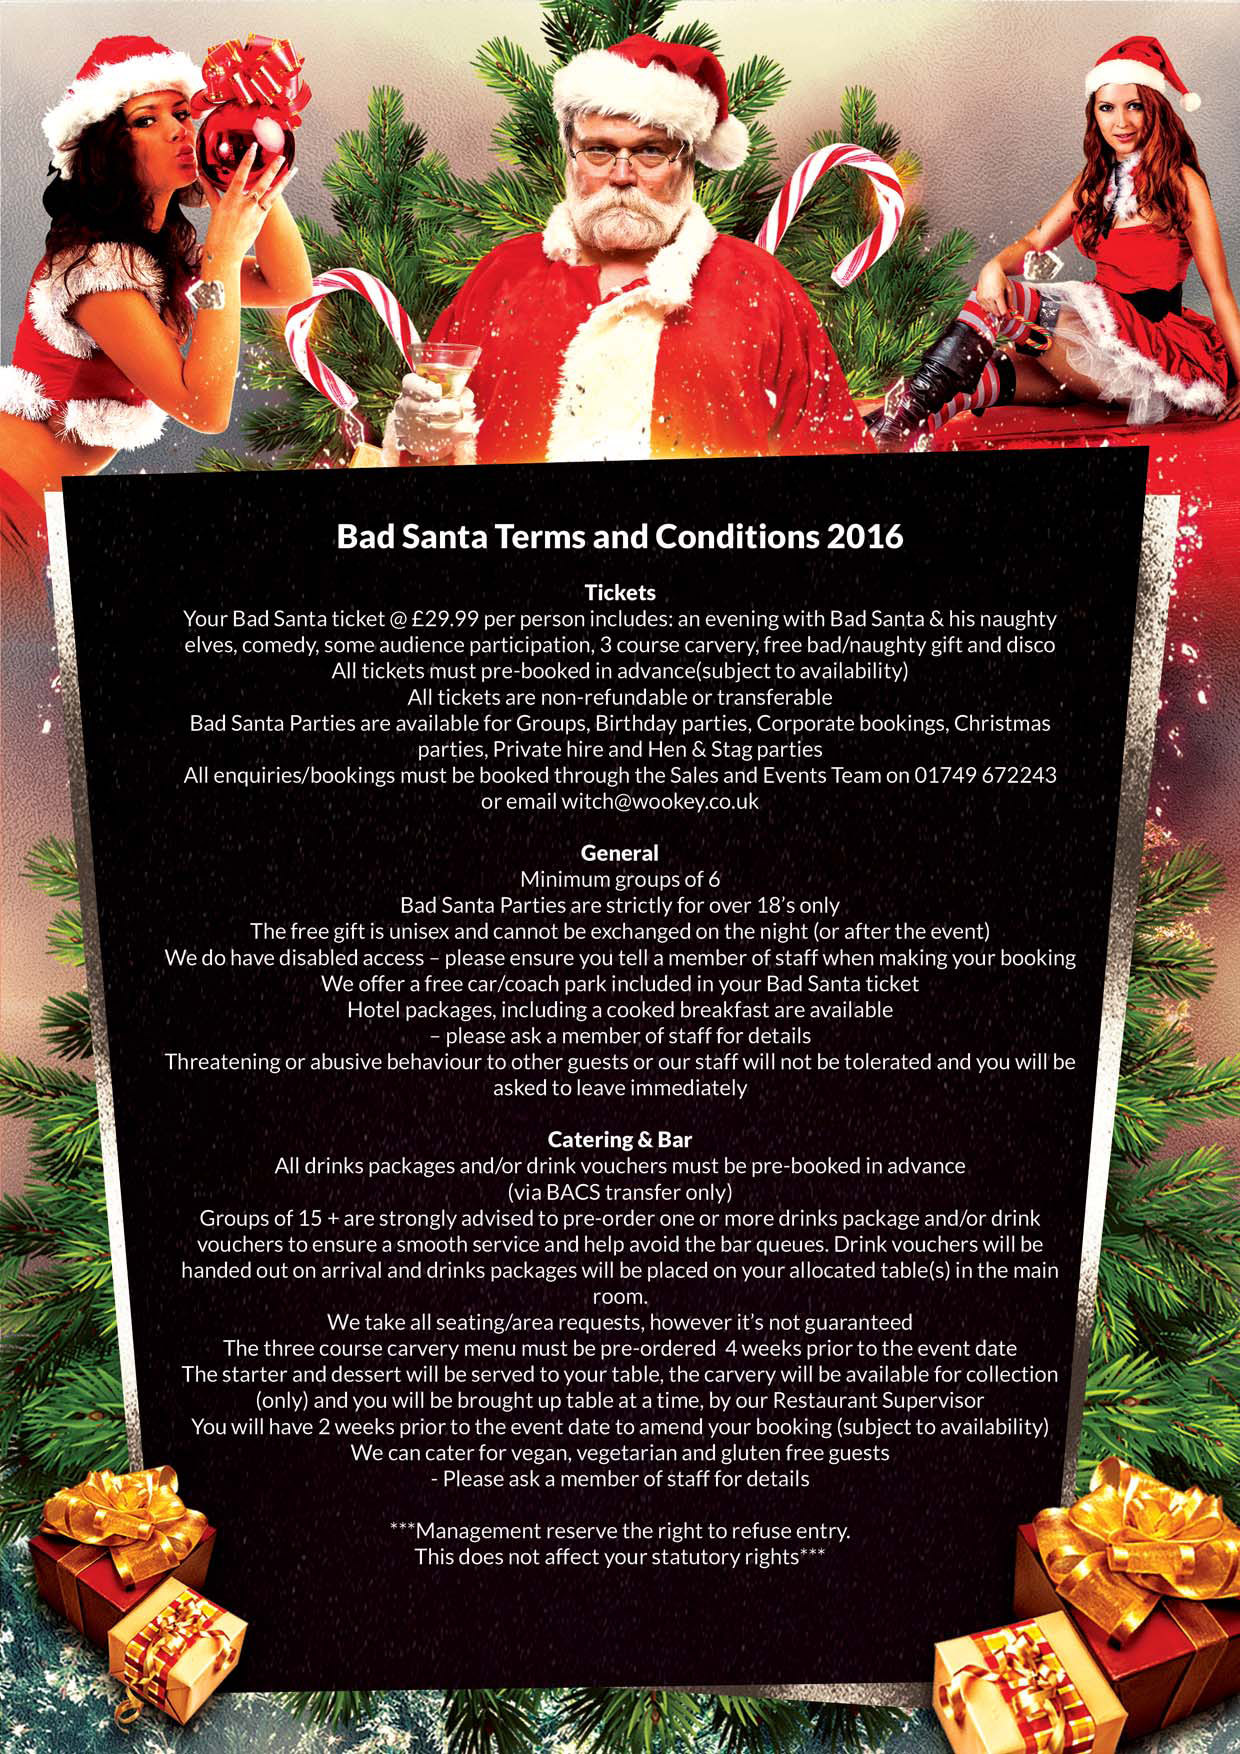 A4 BadSanta Terms and Conditions